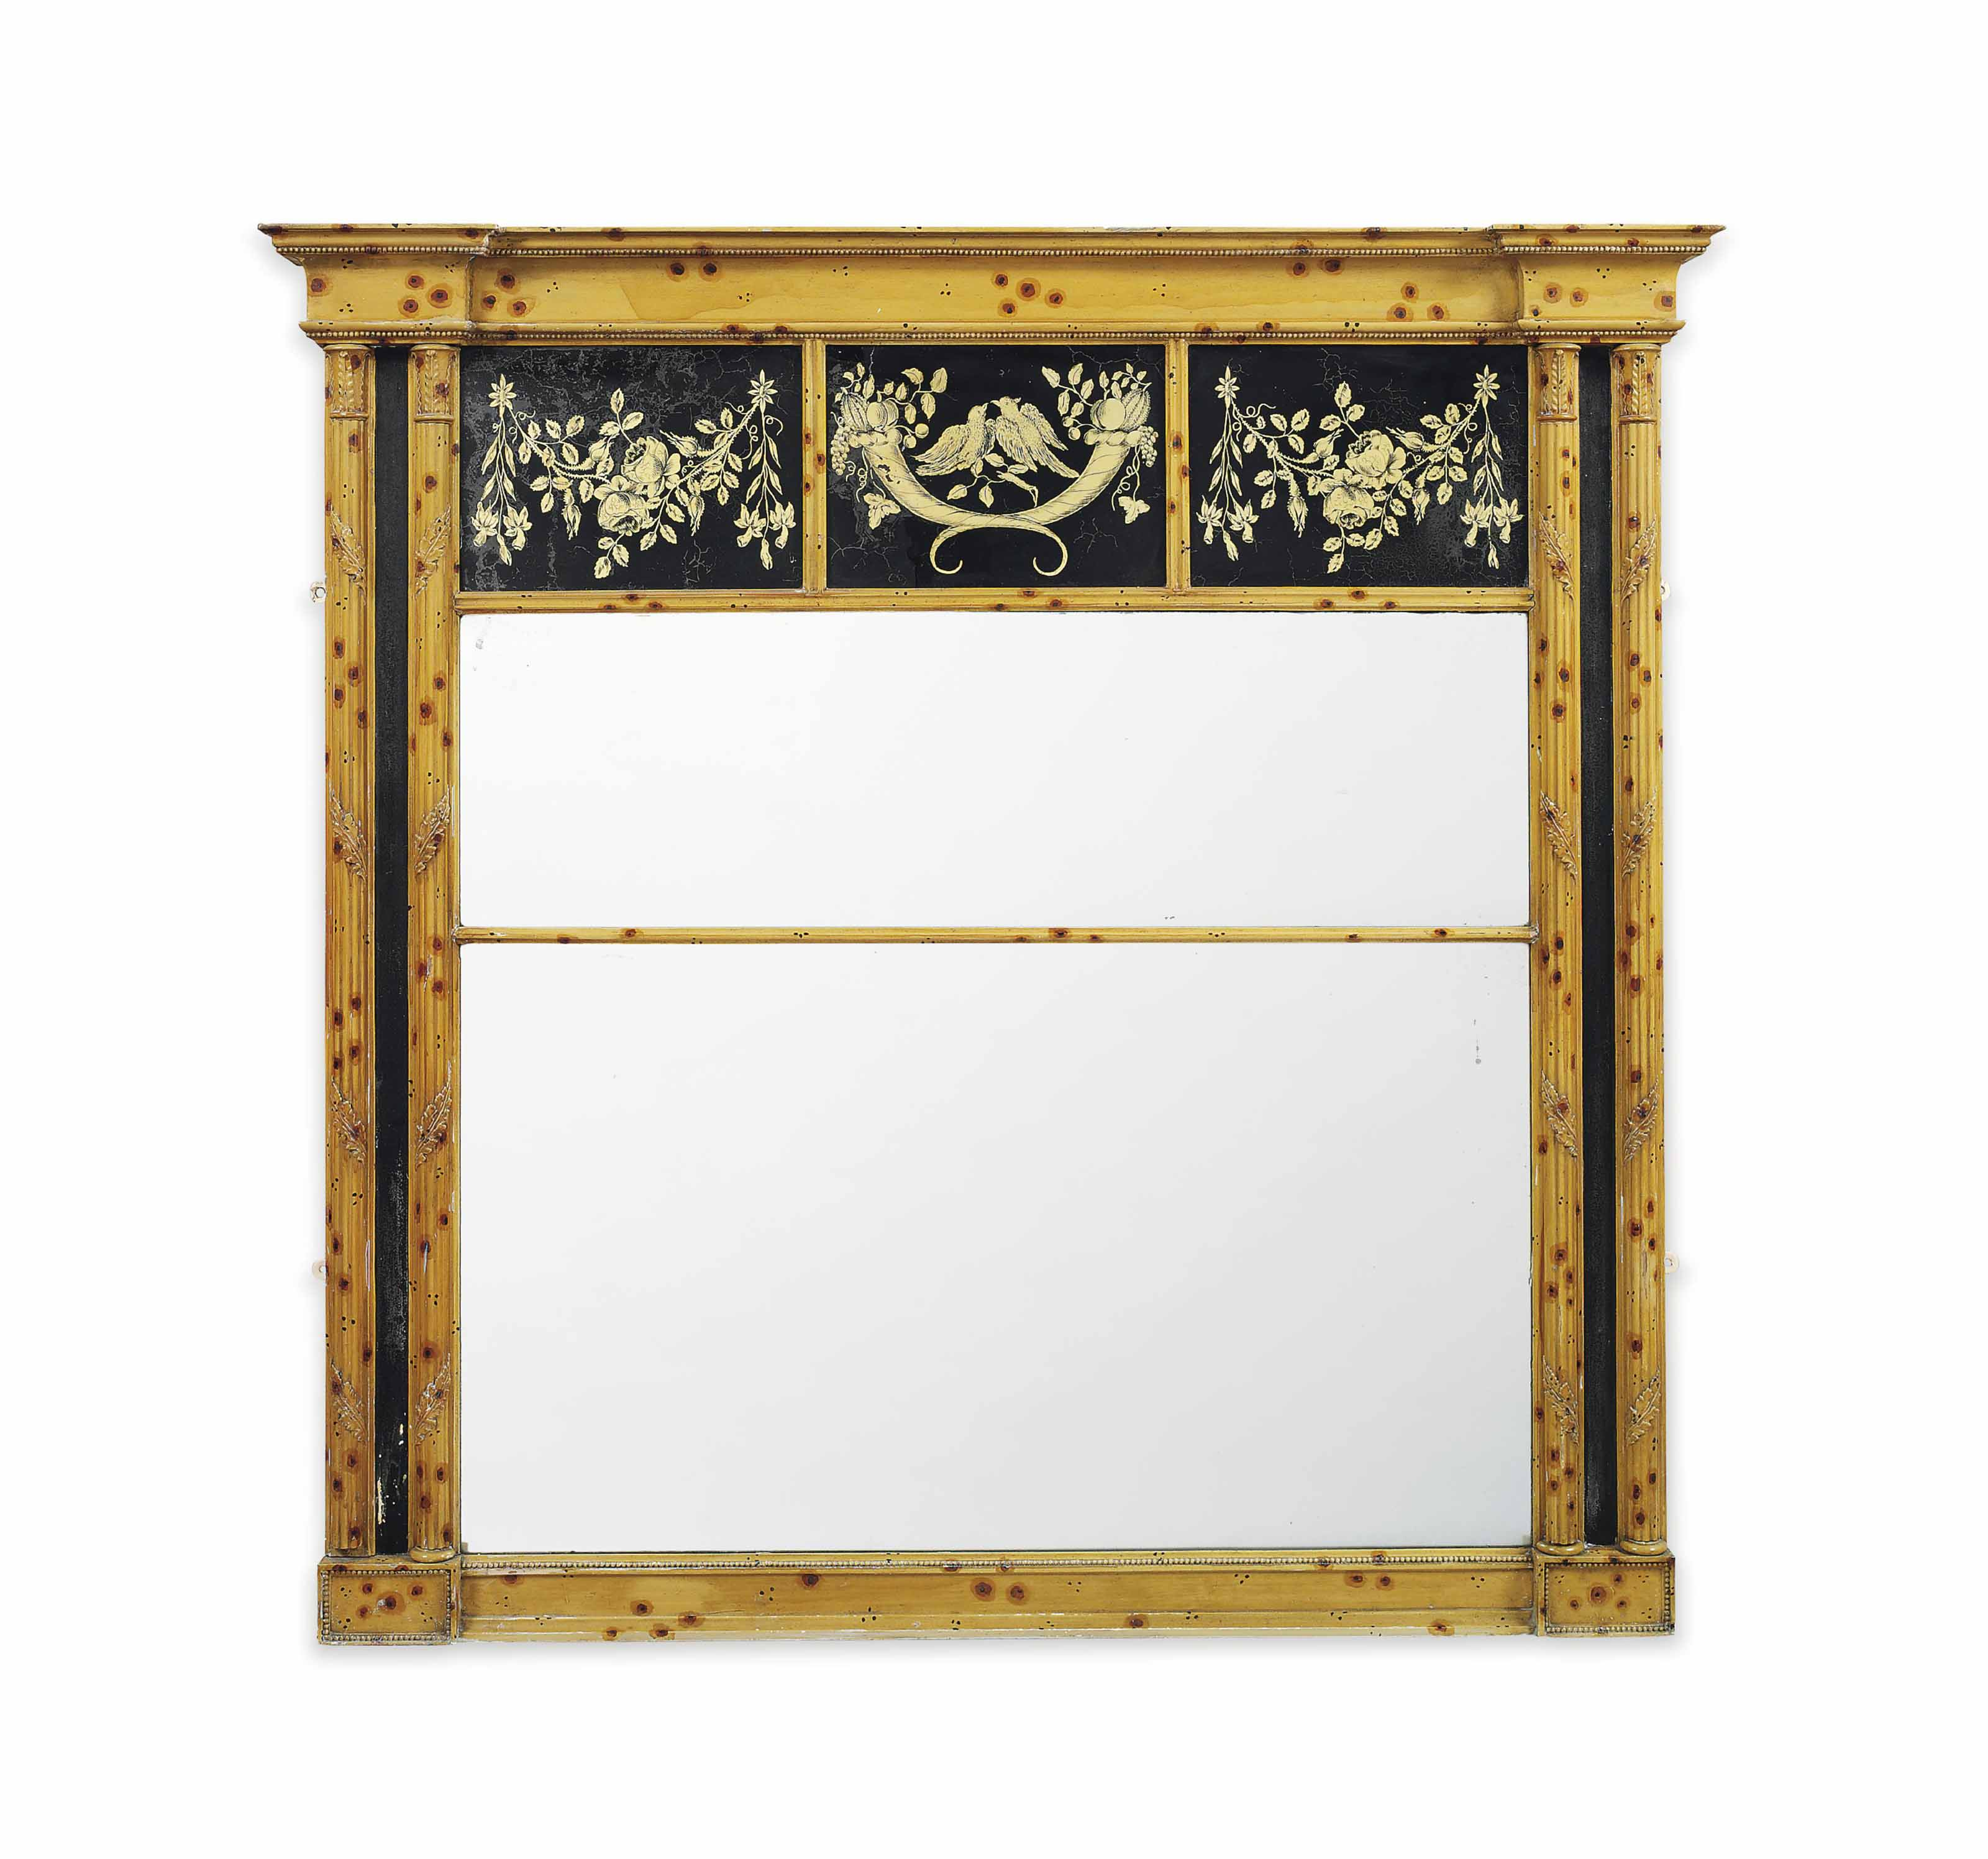 A REGENCY SIMULATED BAMBOO AND VERRE EGLOMISE OVERMANTEL MIRROR